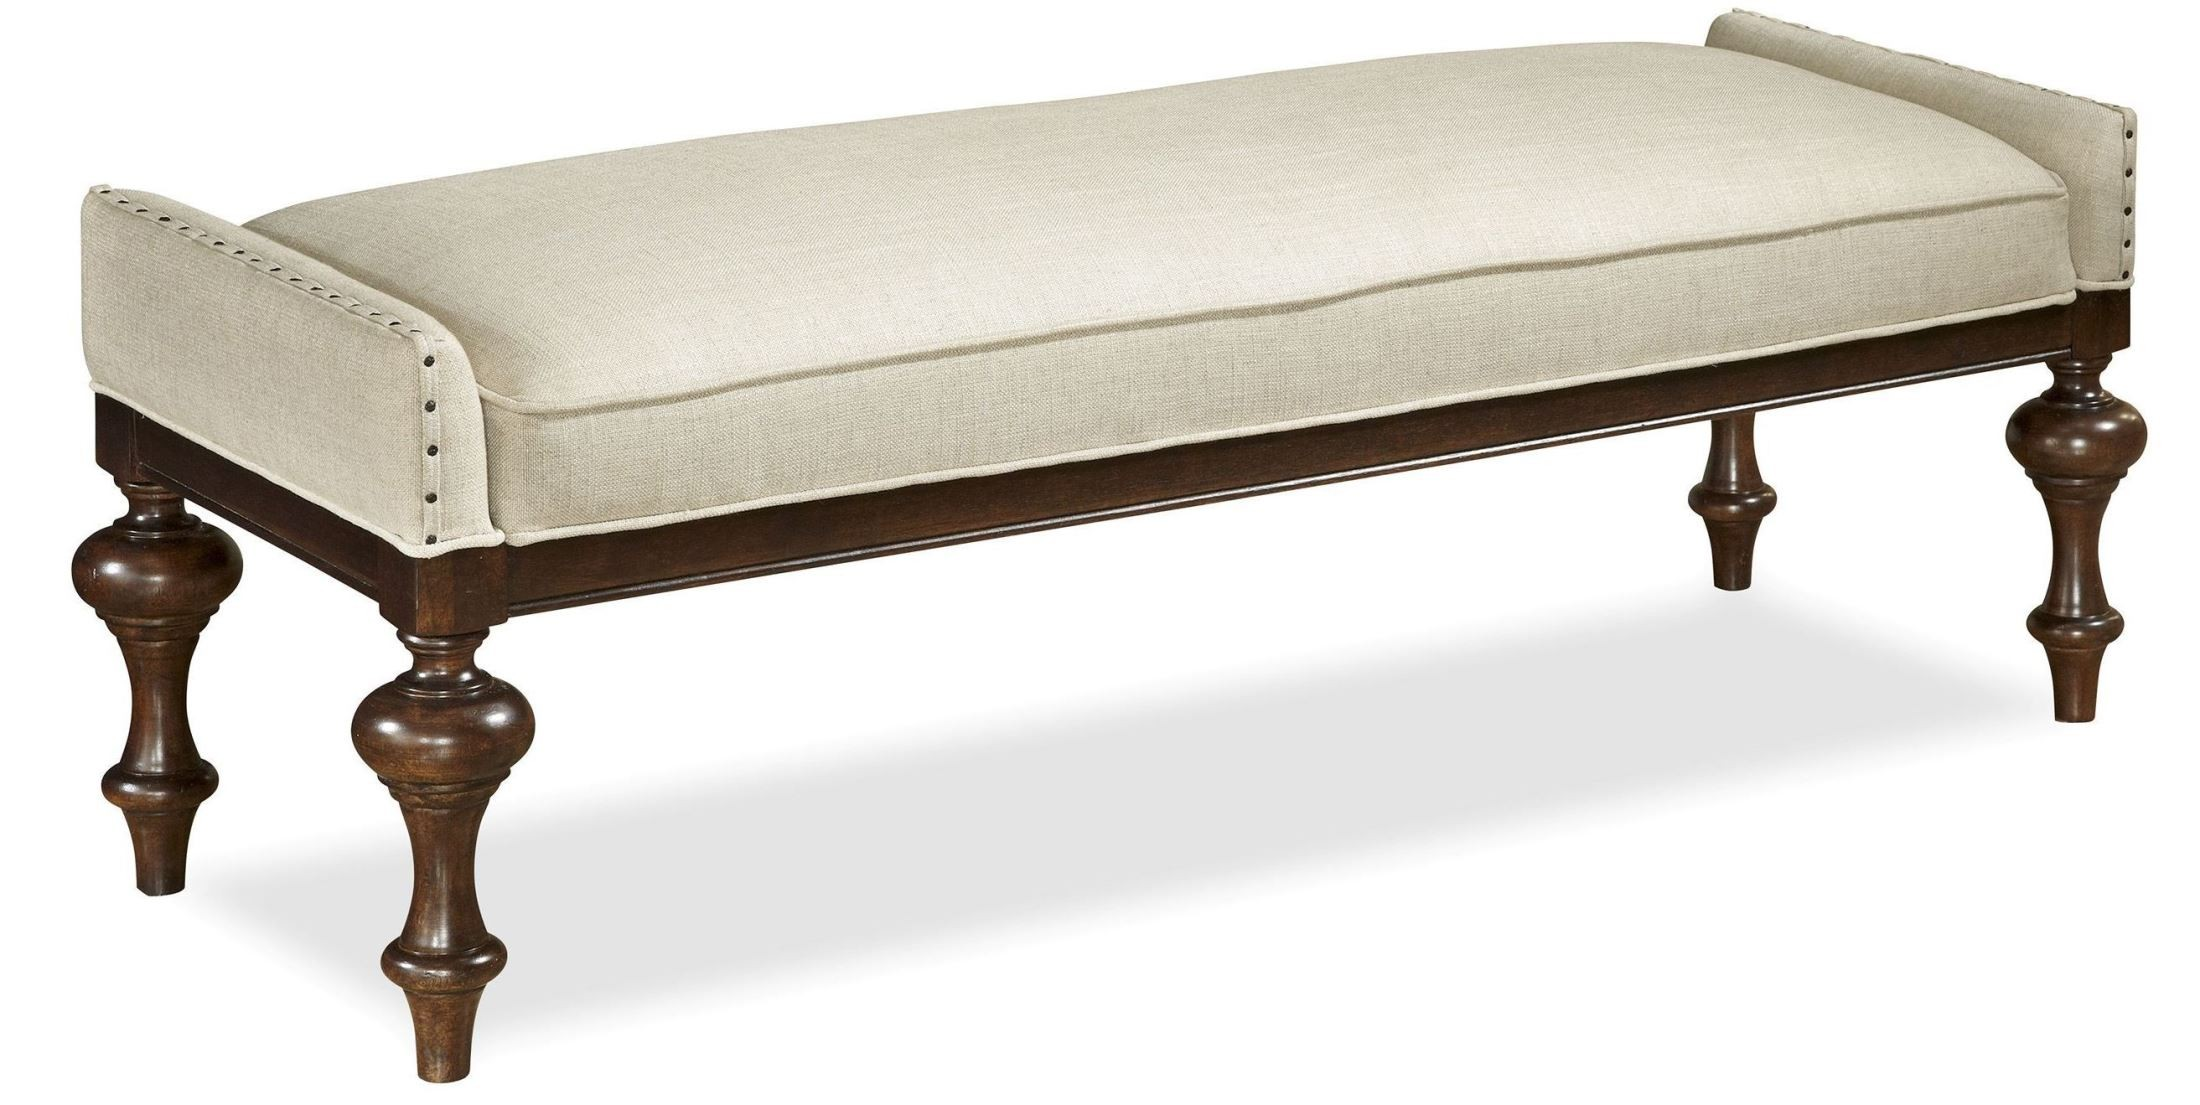 Proximity Bed End Bench From Universal 356380 Coleman Furniture